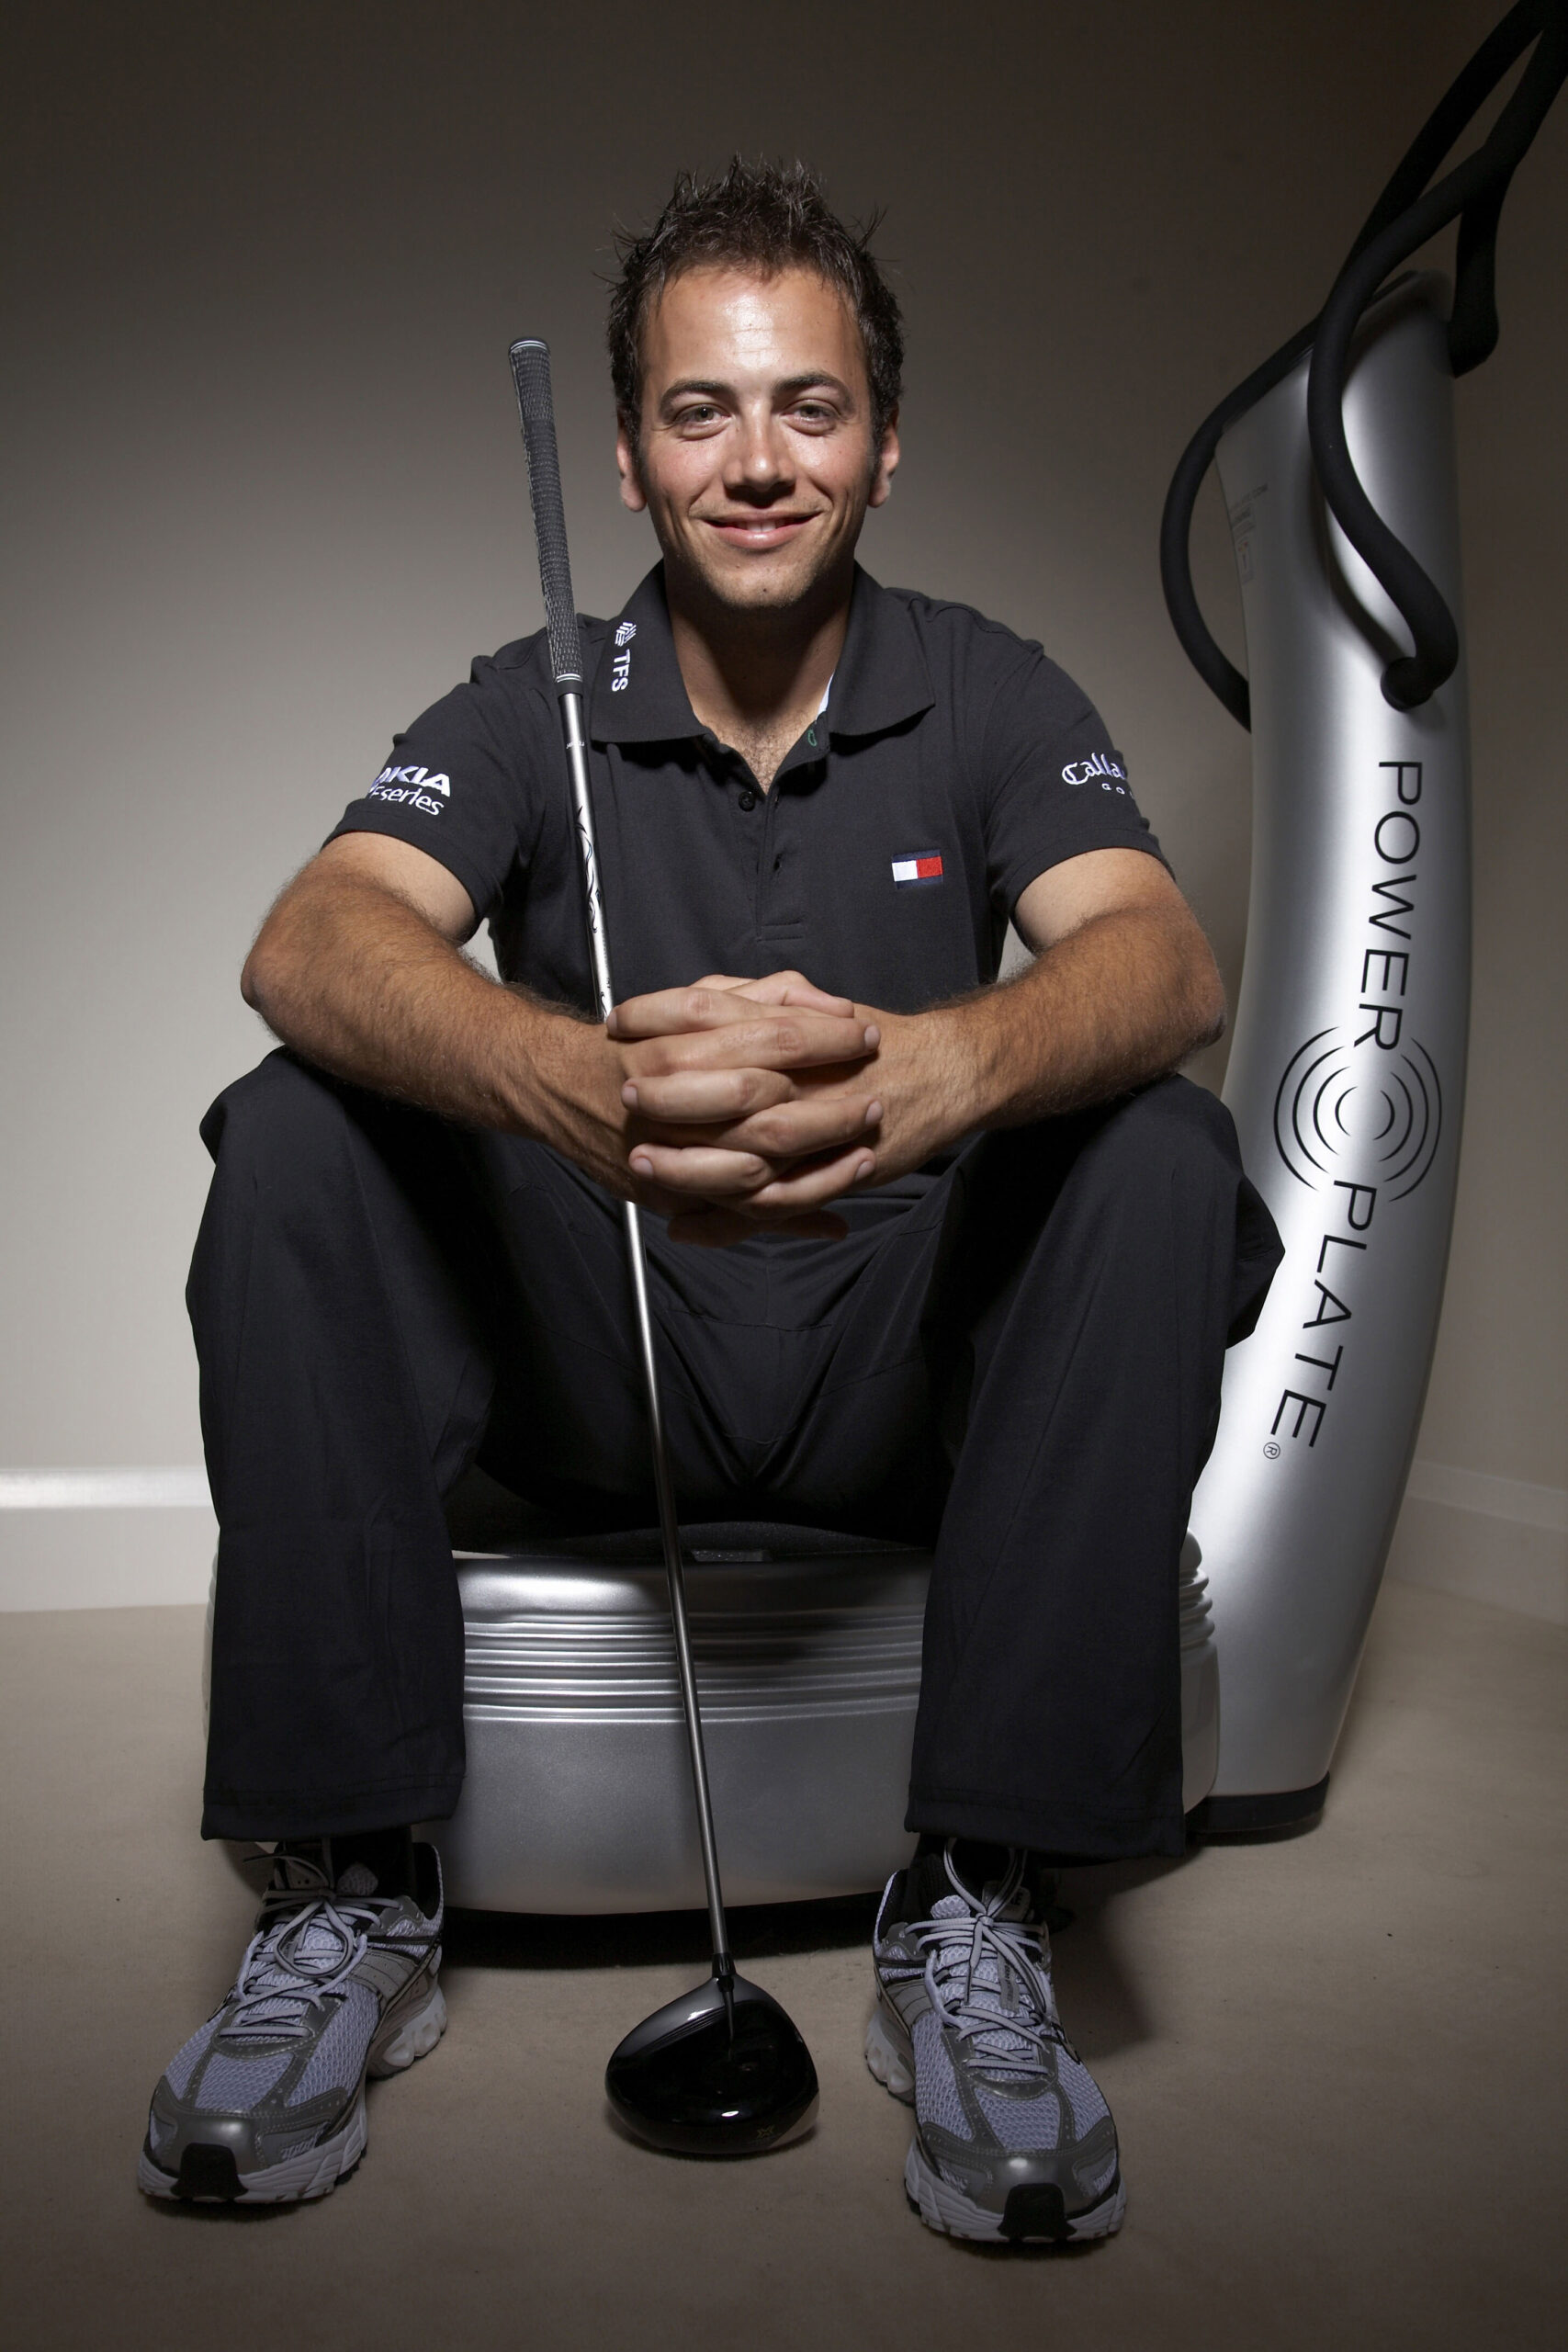 PowerPlate Golfer Nick